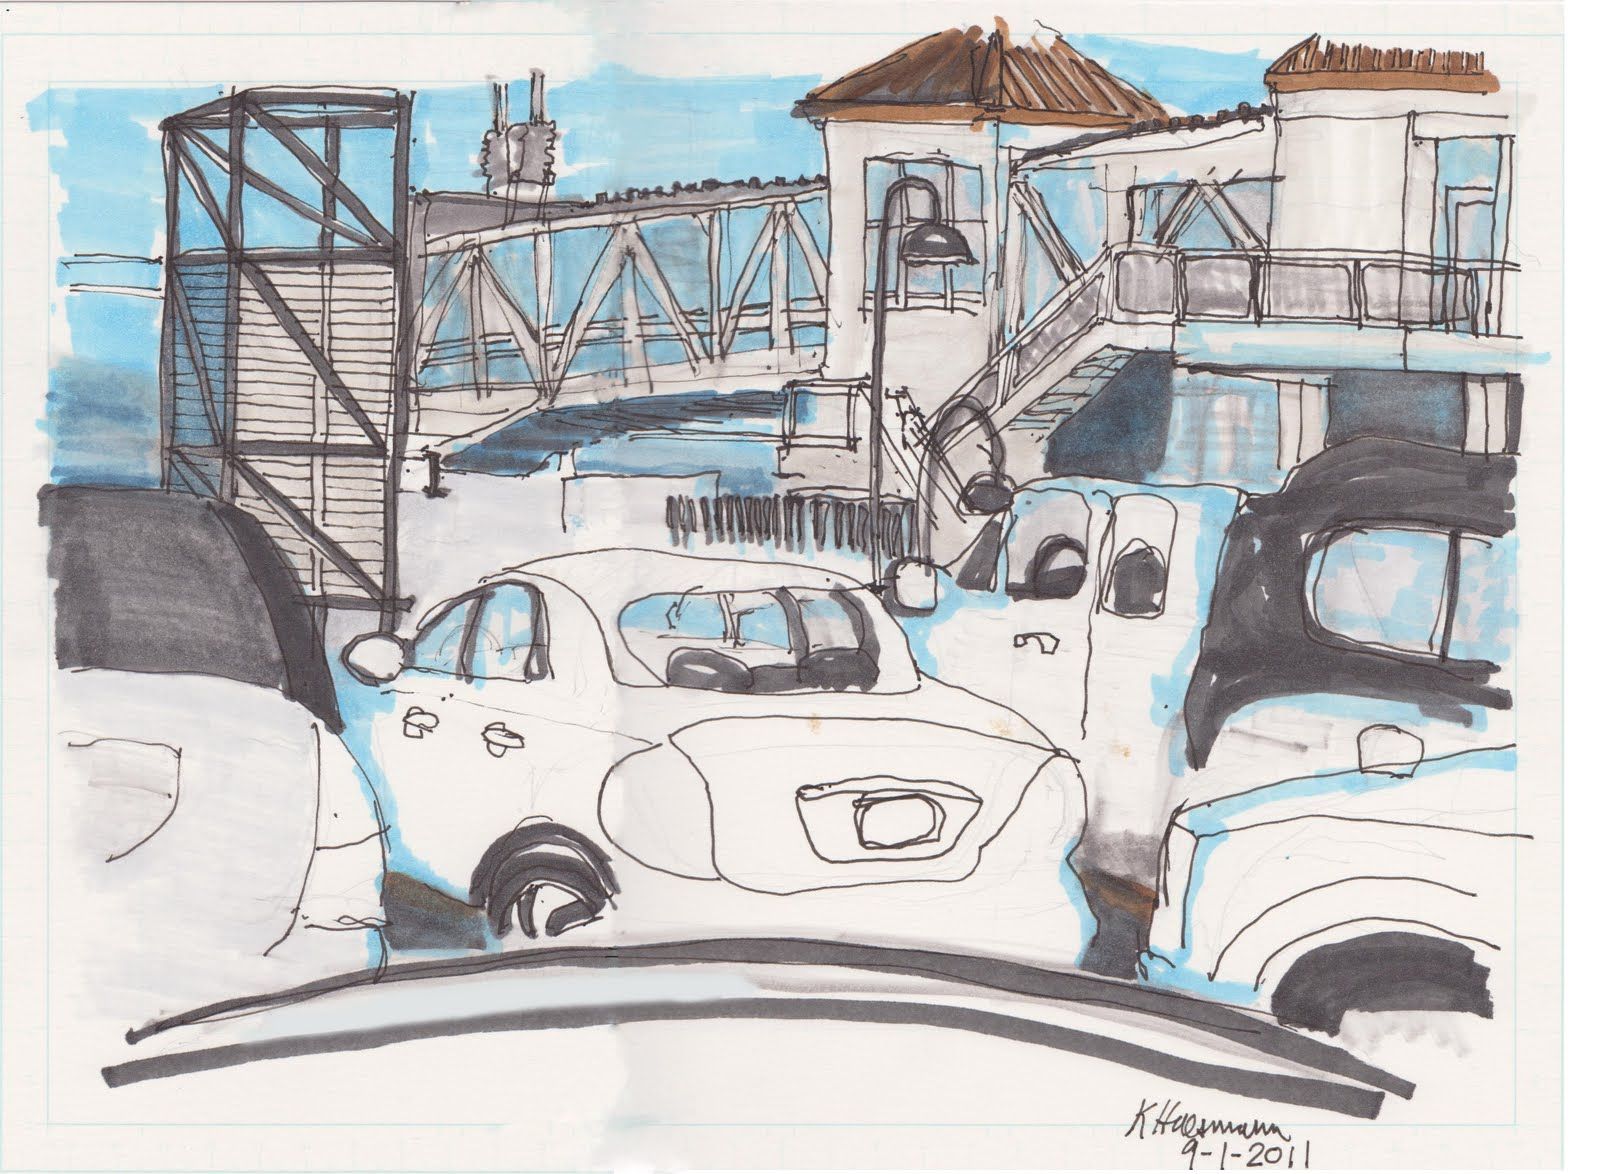 Waiting for the next ferry (leaving Seattle) by K. Huessman